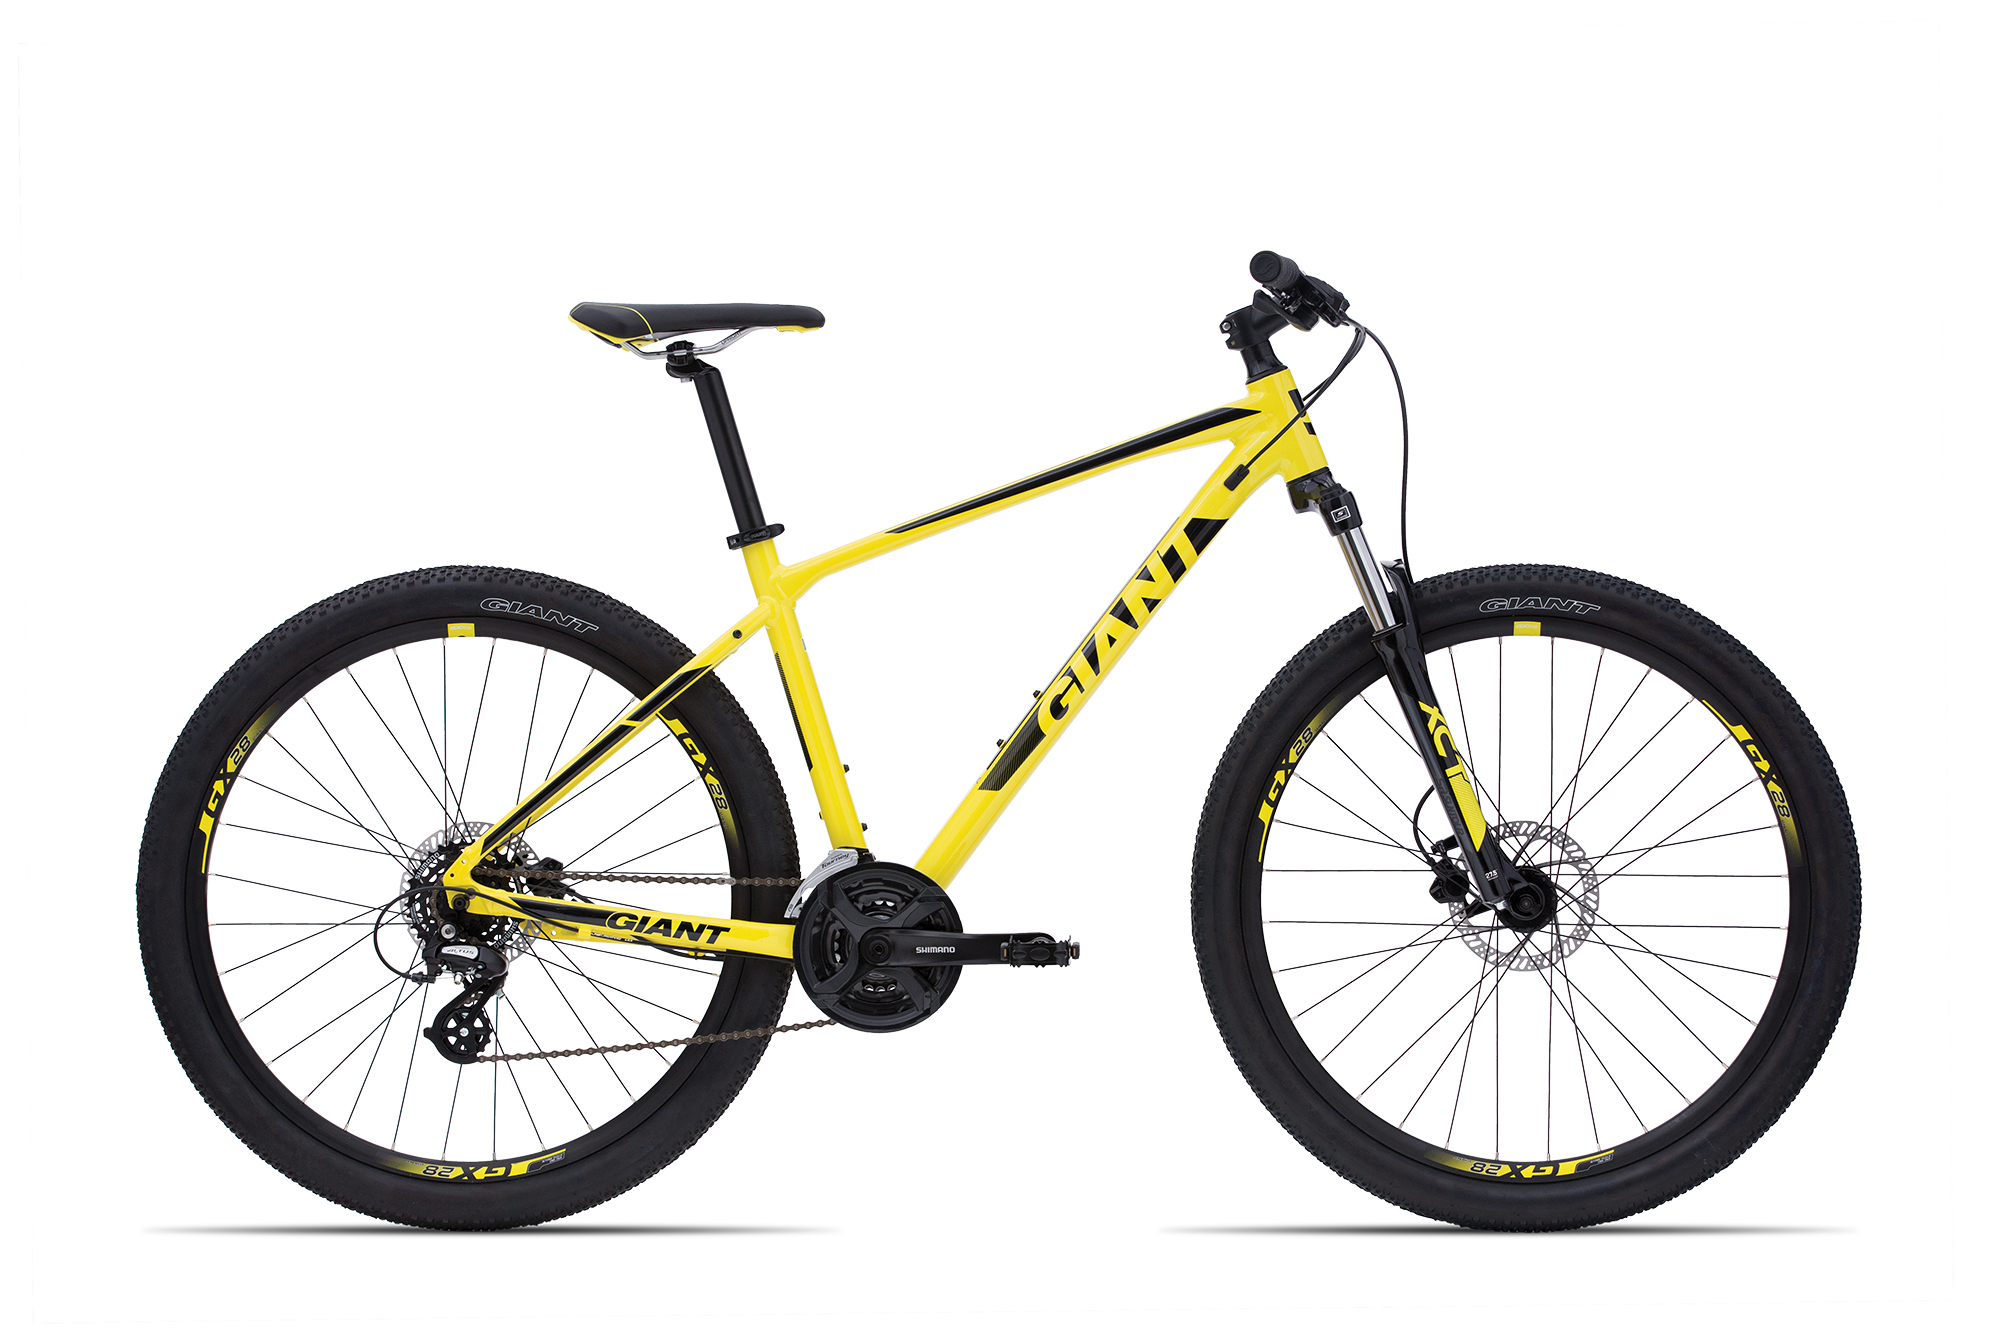 Giant ATX 1 Lemonyellow-Black 2019